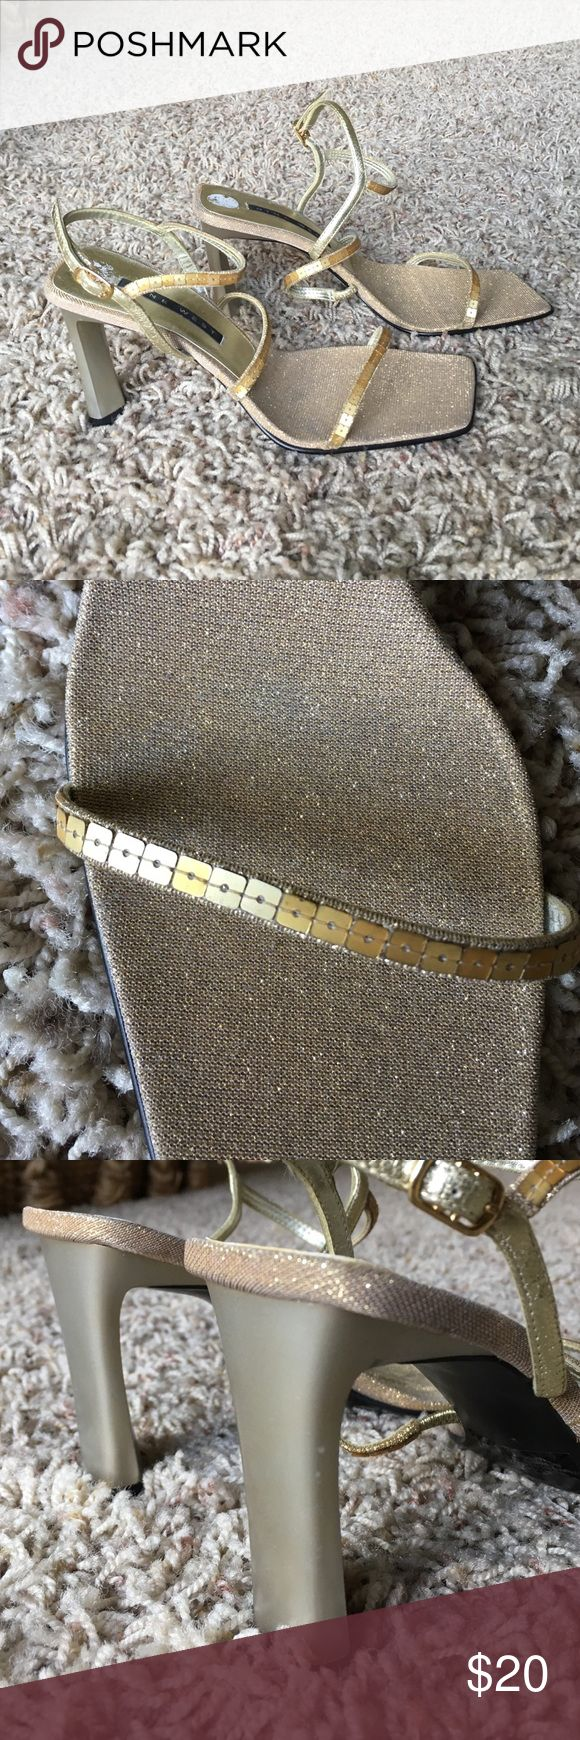 """Nine West Gold High Heel Sandals Size 6 New without tags or box gold evening sandals. 3"""" heel. Nine West Shoes Sandals"""